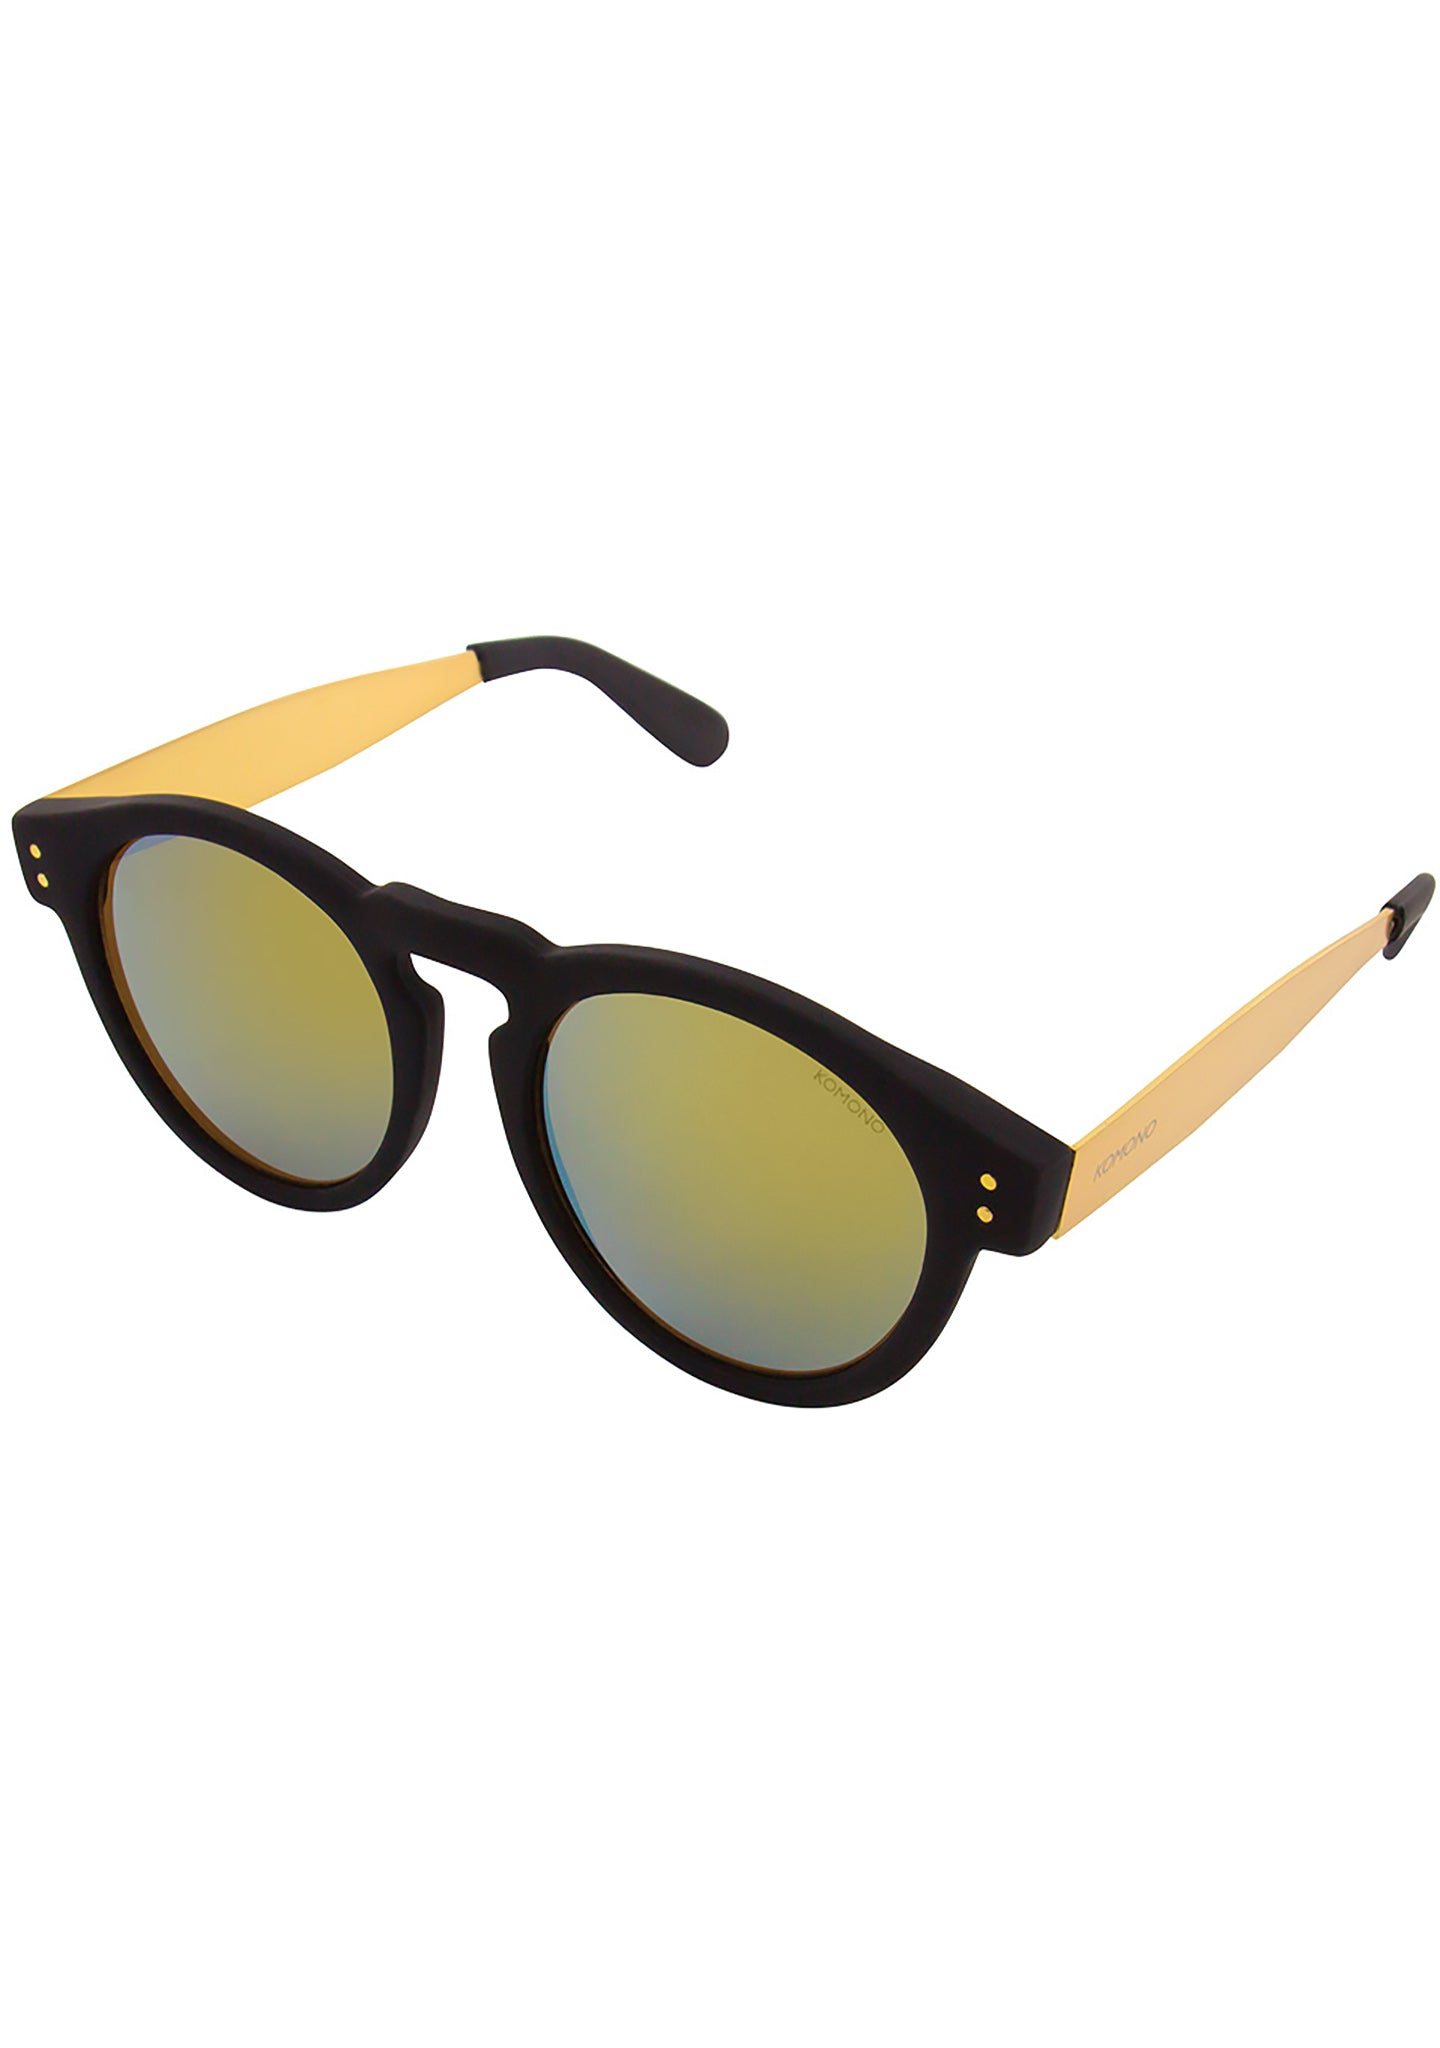 KOMONO Clement Metal Series Sunglasses in Black/Gold